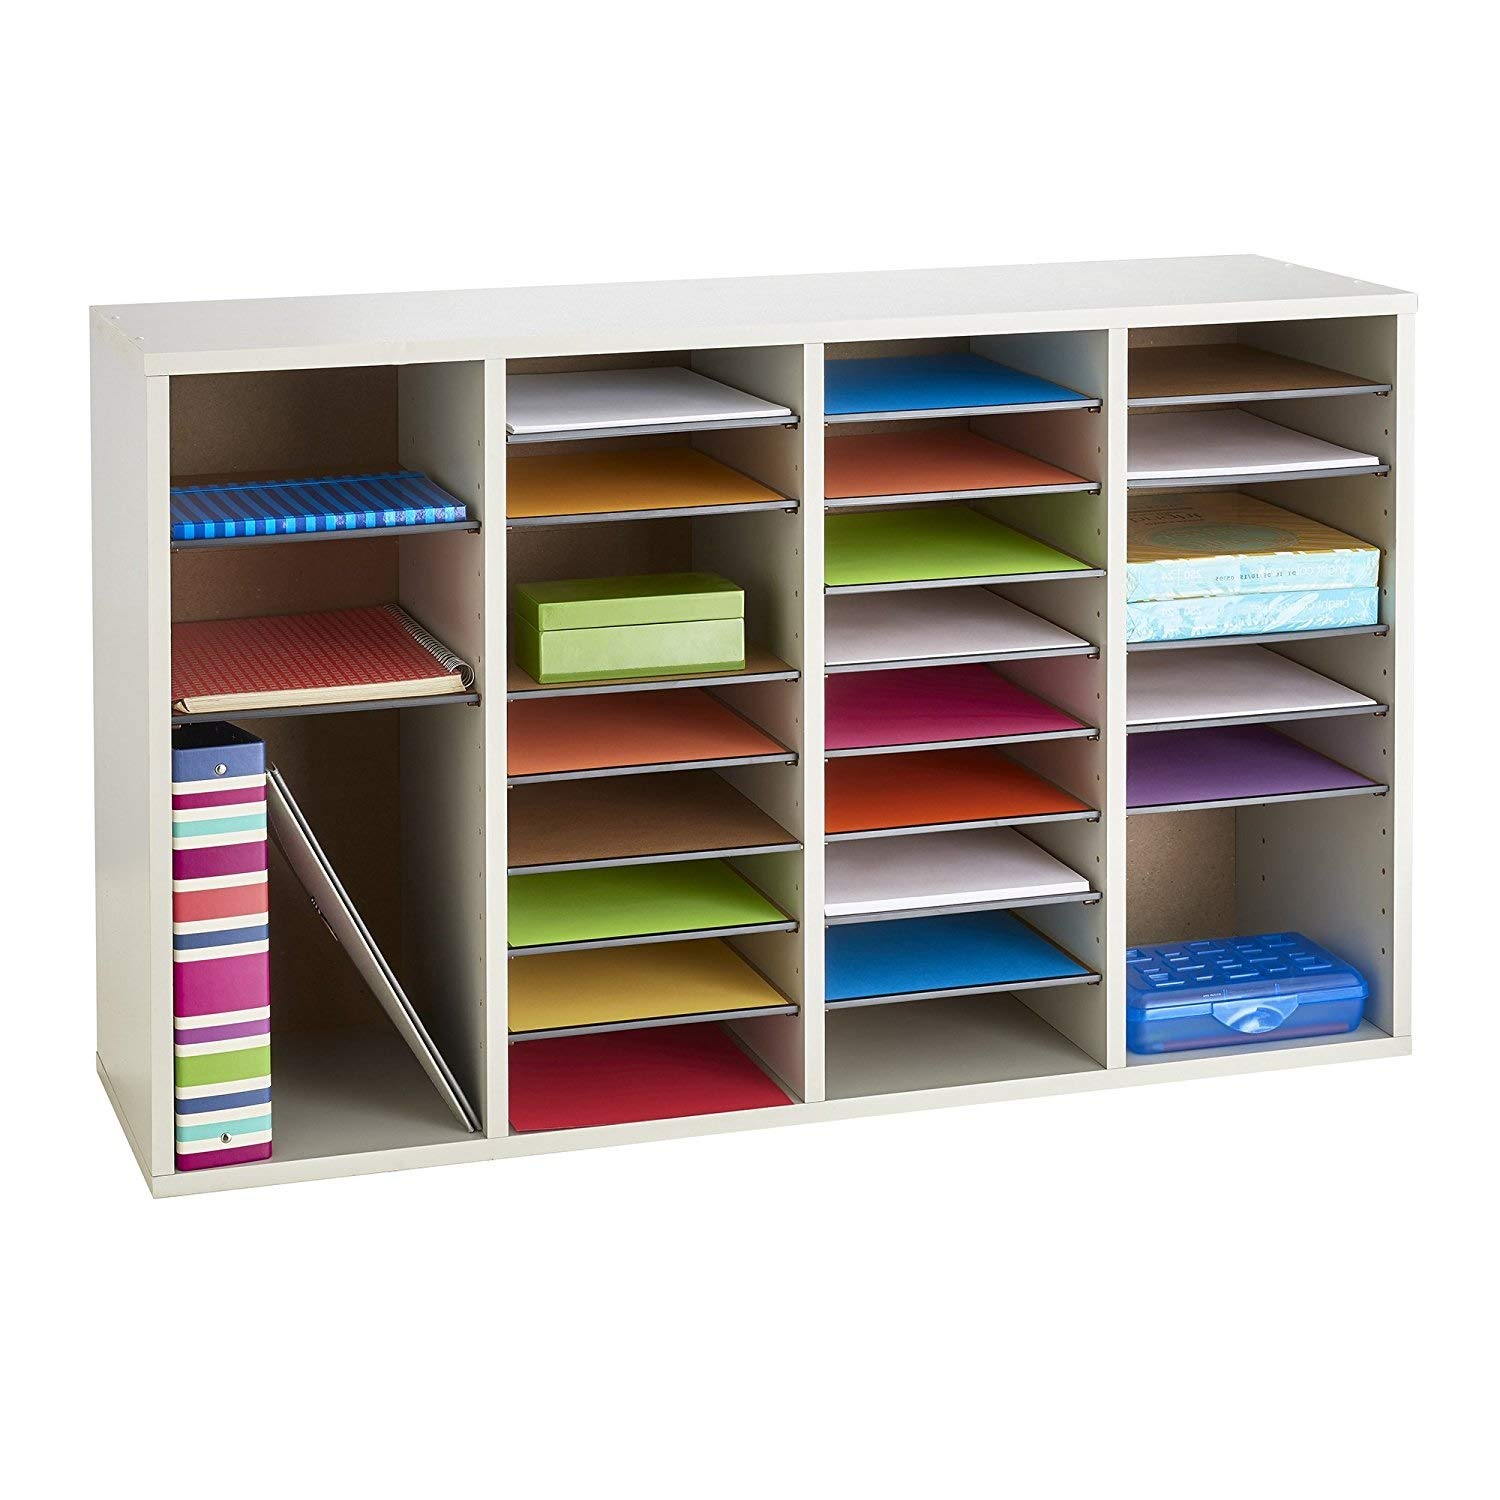 Safco Products Wood Adjustable Literature Organizer, 36 Compartment 9424GR, Gray, Durable Construction, Removable Shelves, Stackable by Safco Products